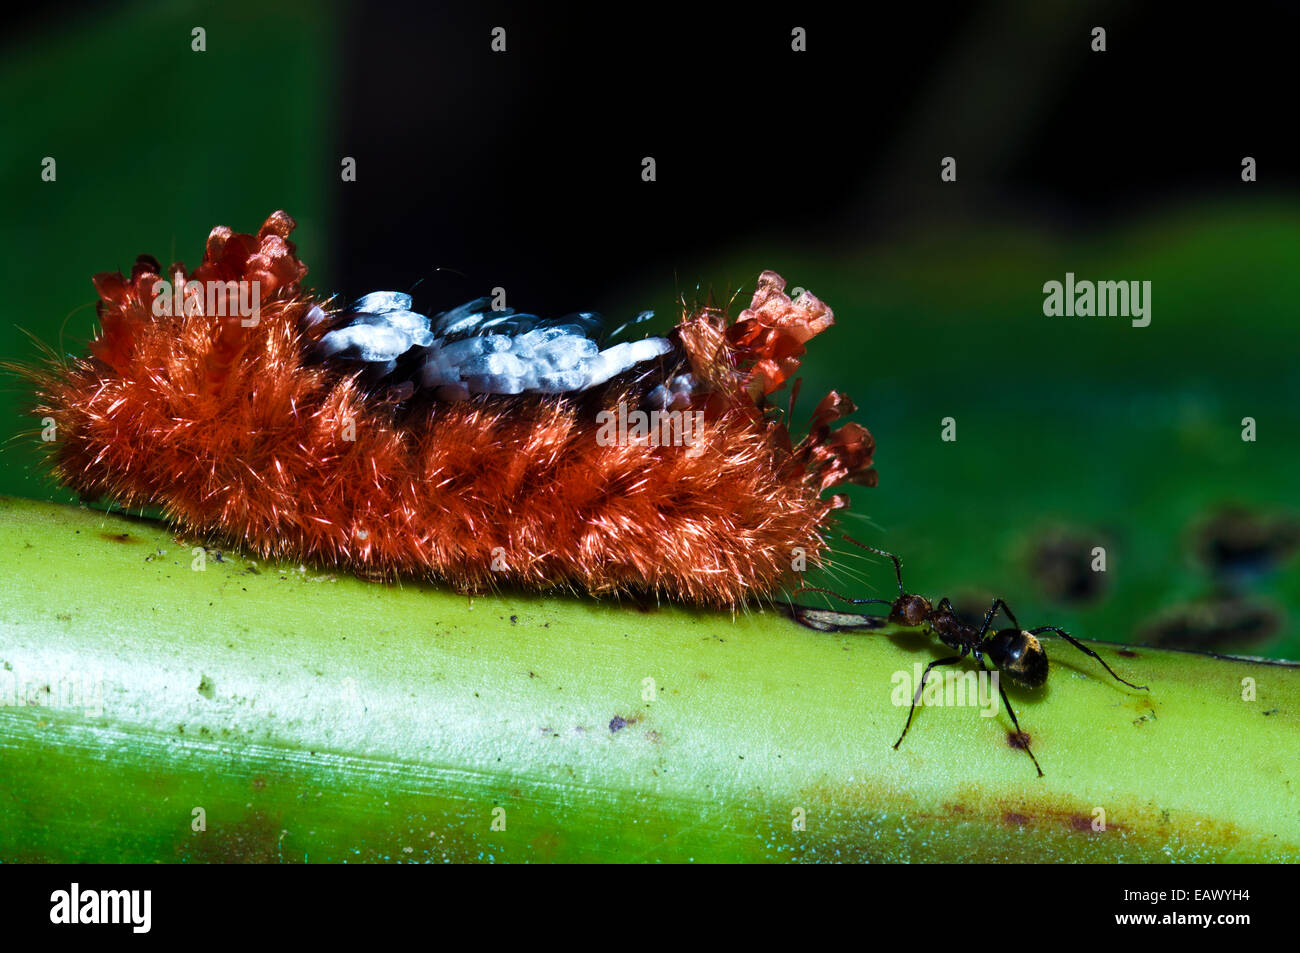 A thick coat of poisonous hairs protects the Tarchon larvae of a moth from attack by an ant. - Stock Image